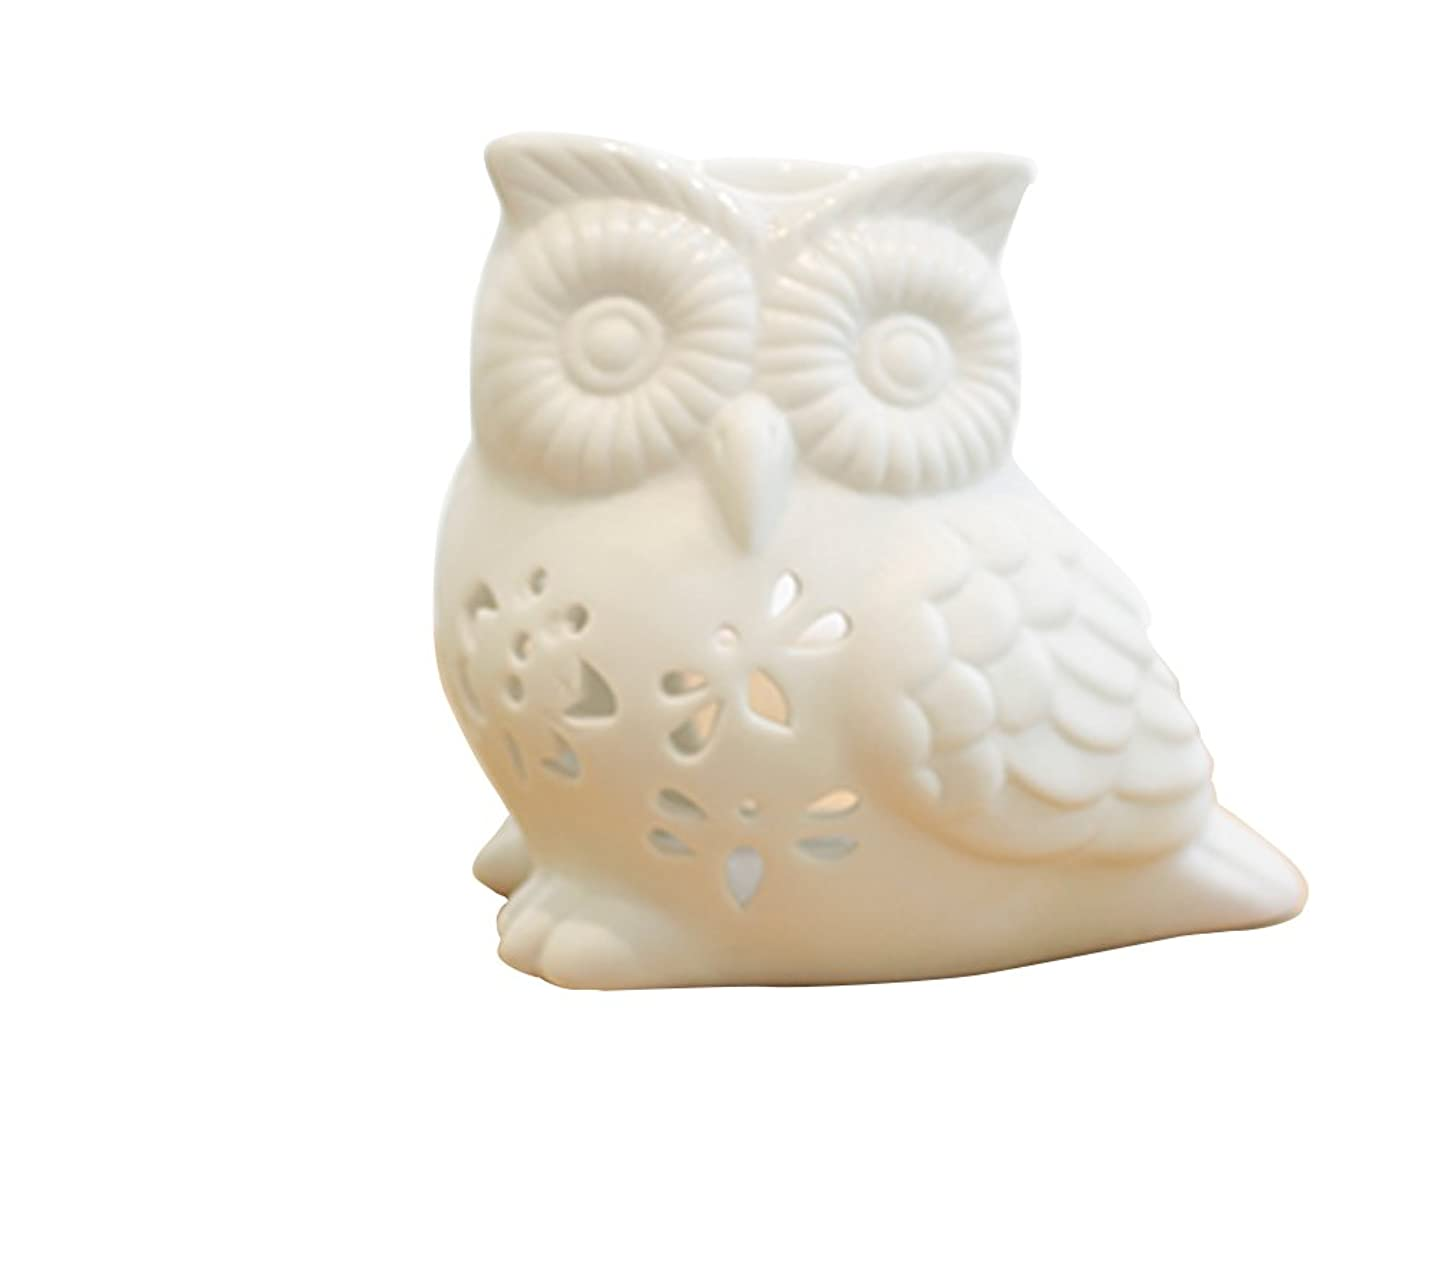 ToiM Milk White Ceramic Hollowing Floral Aroma Lamp Candle Warmers Fragrance Warmer Oil Diffuser Essential Oil Lamp Aromatherapy Furnace Ceramic Incense Burner Wax Melt Warmer (Owl Shaped)